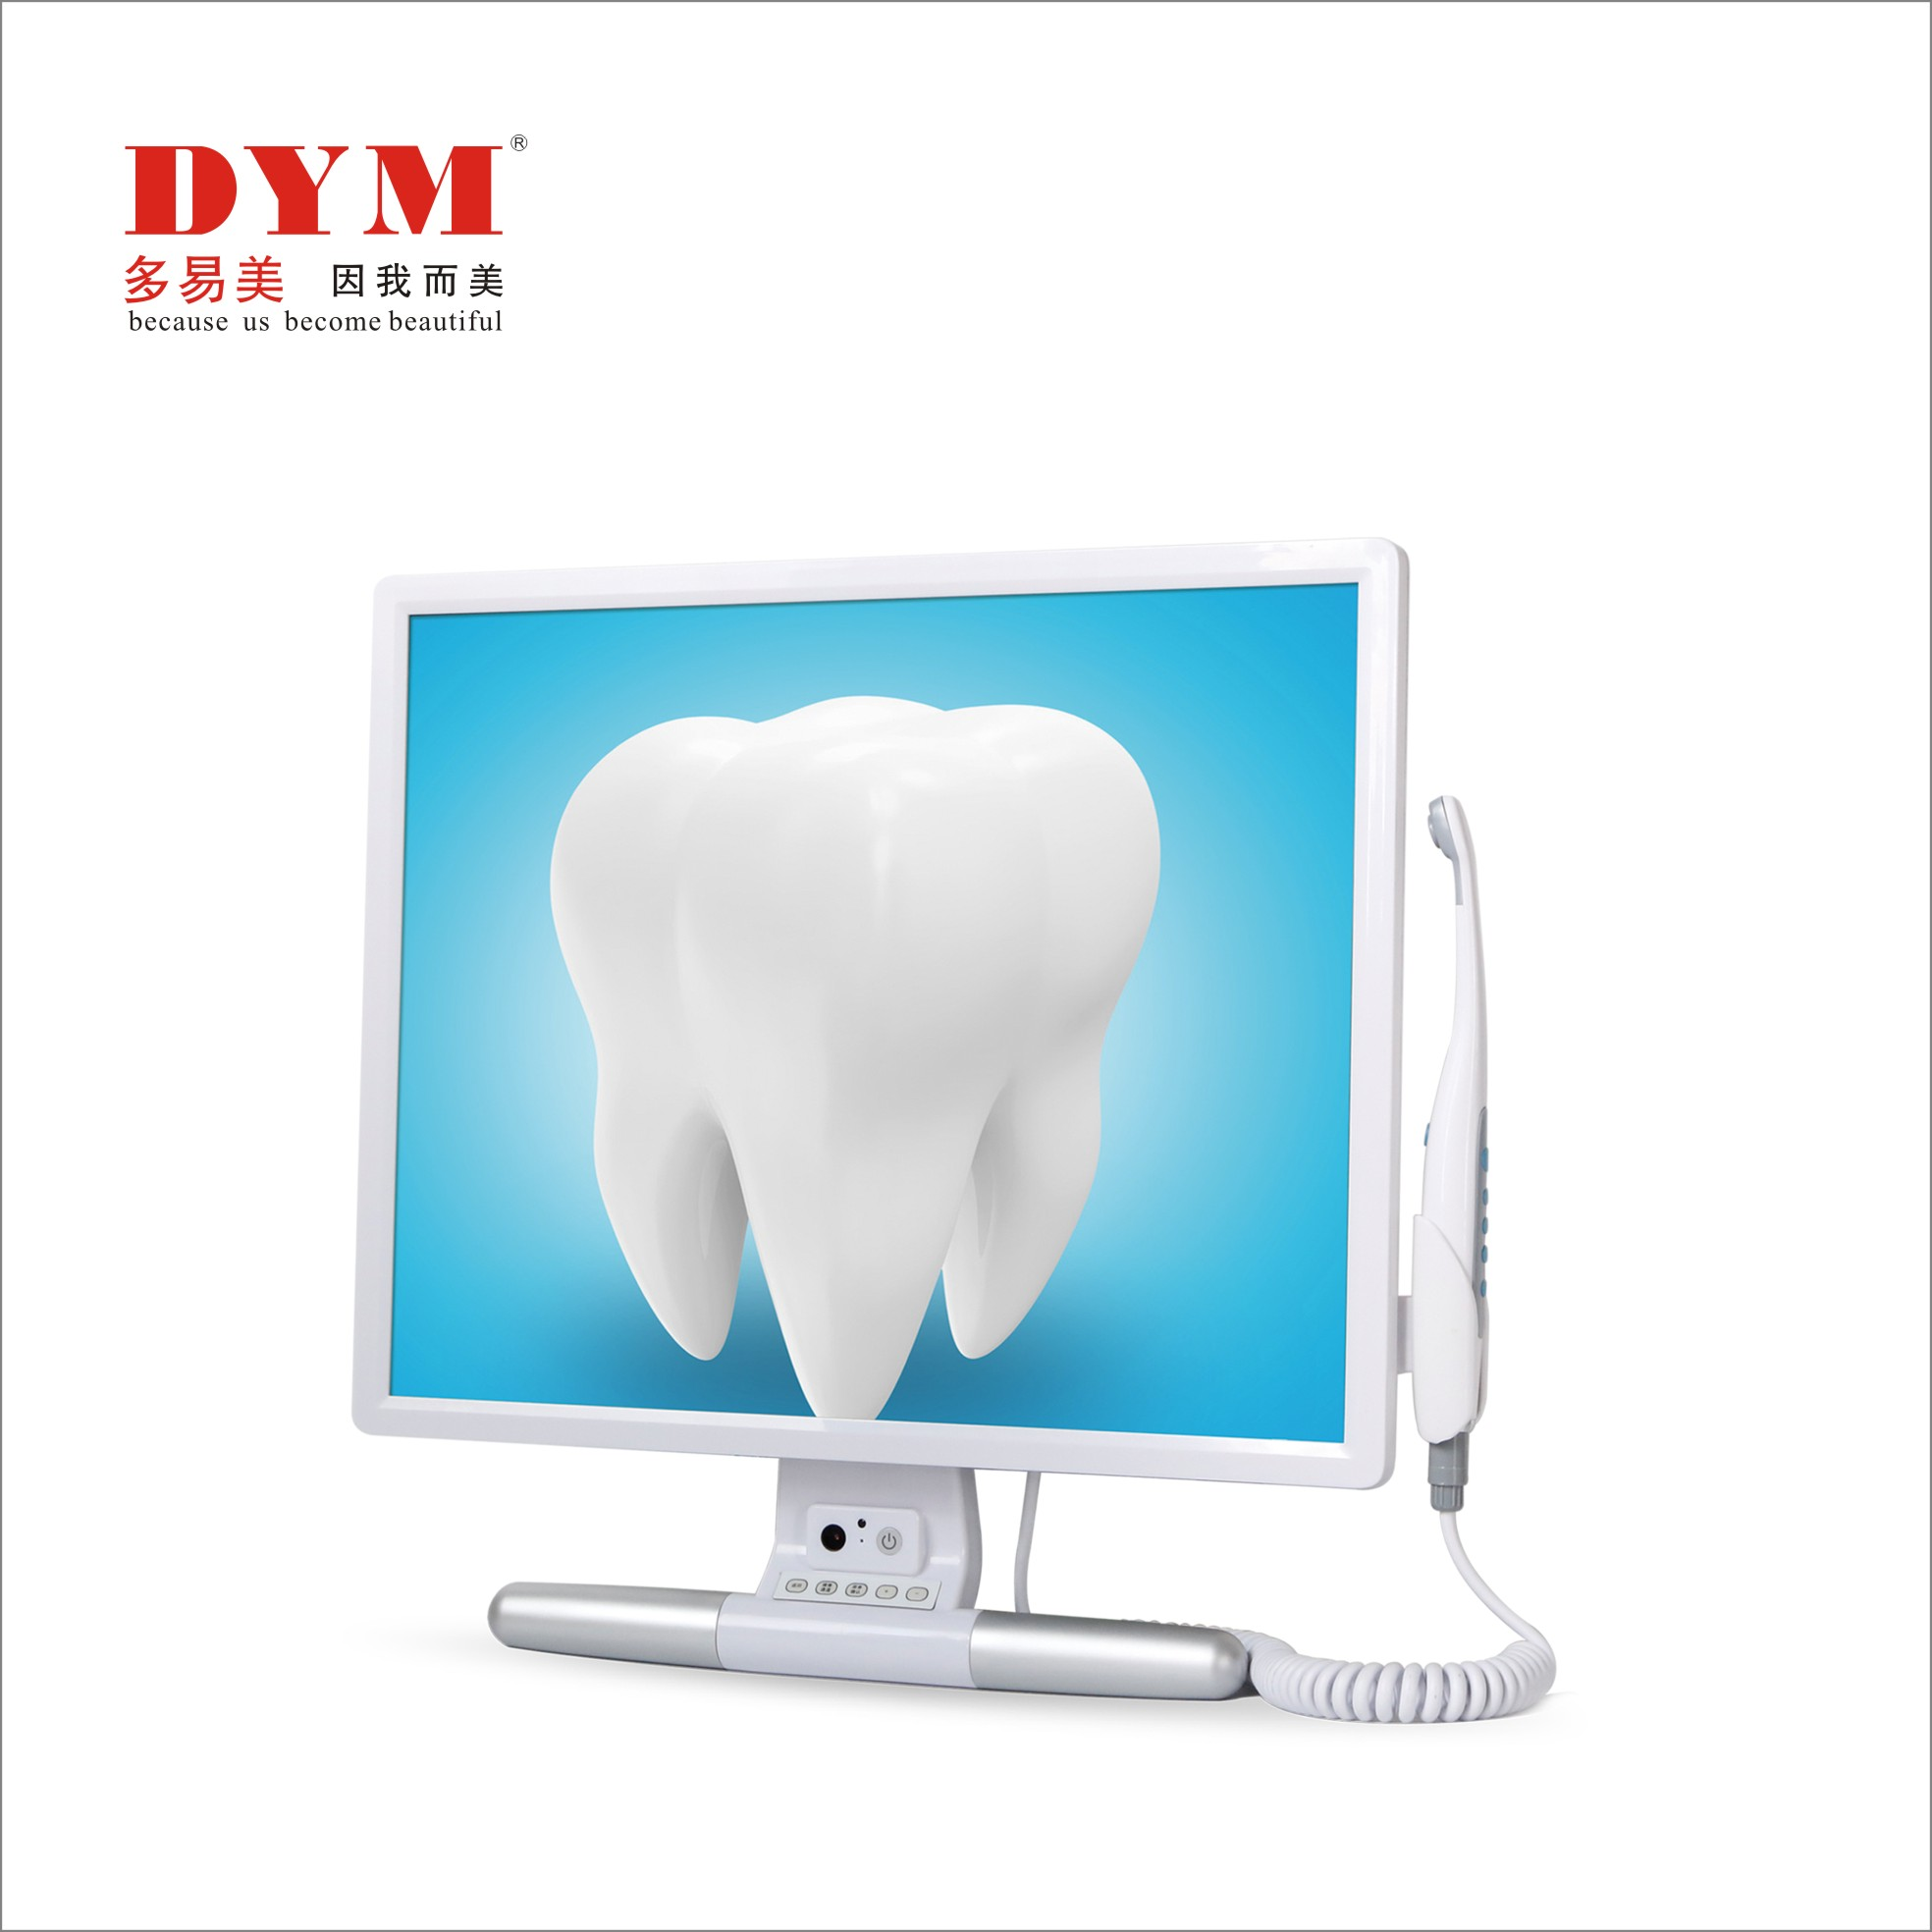 19 inch HD monitor with WIFI Multifunction dental Intra oral camera system Manufacturers, 19 inch HD monitor with WIFI Multifunction dental Intra oral camera system Factory, Supply 19 inch HD monitor with WIFI Multifunction dental Intra oral camera system